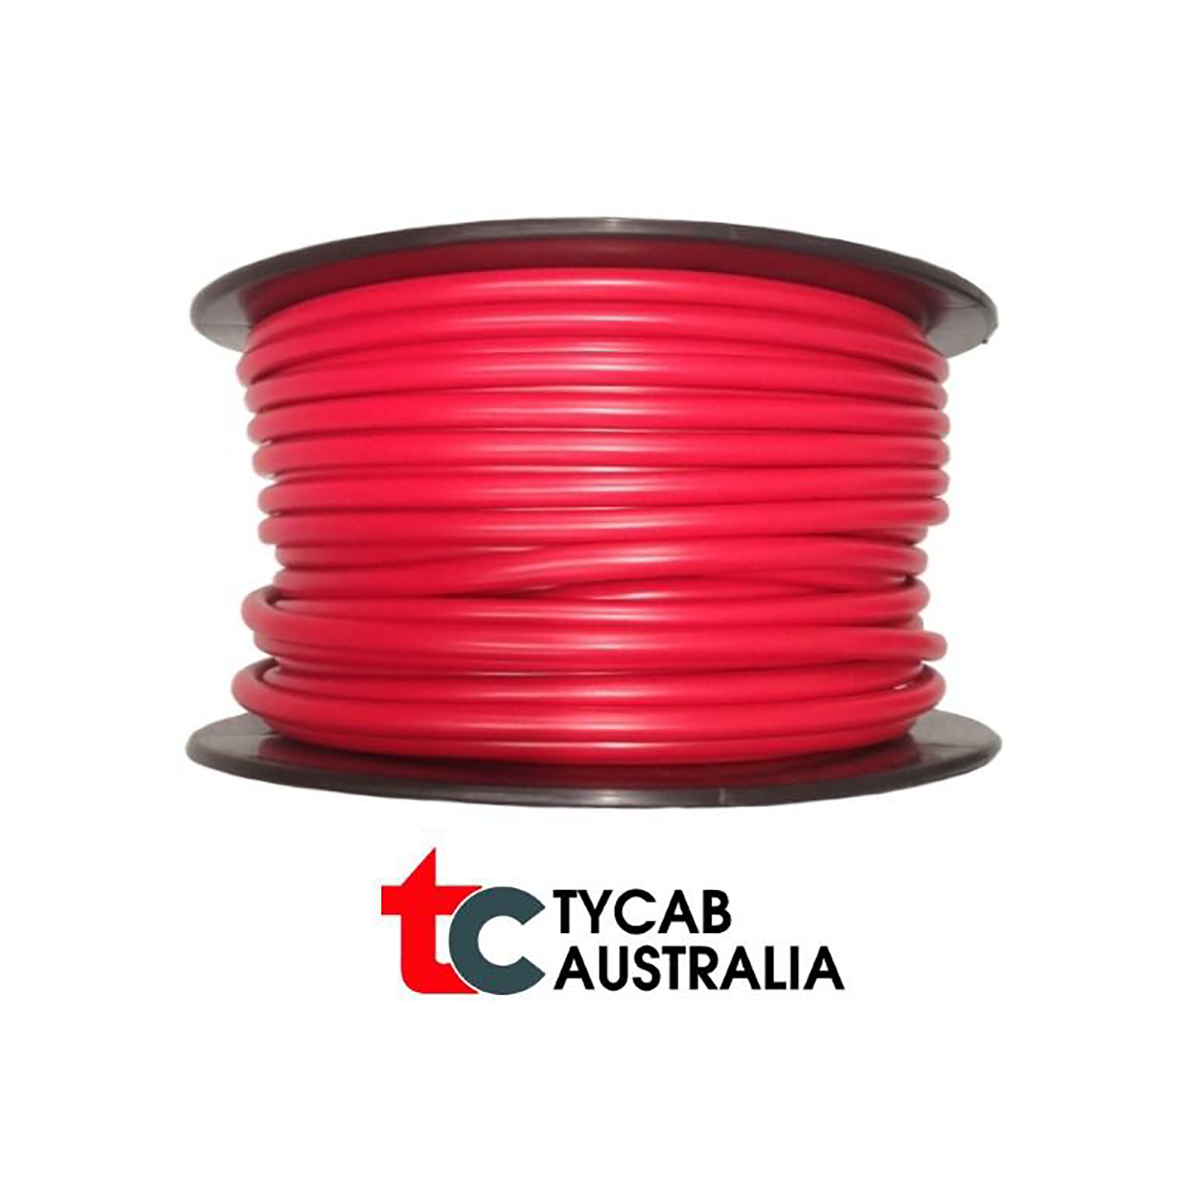 CABLE 25MM SQ RED SINGLE 2B&S